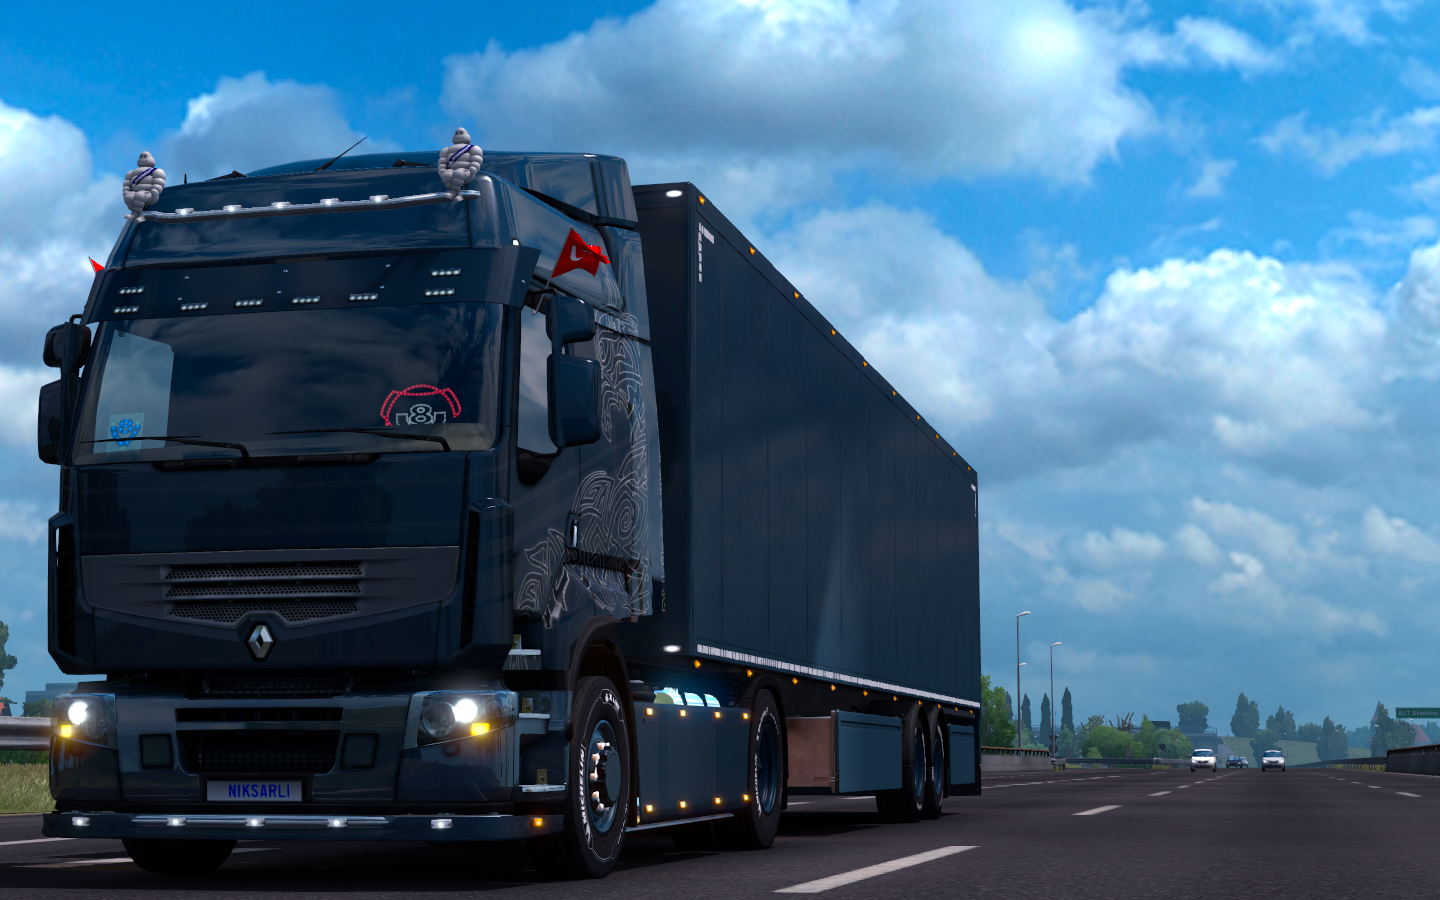 ets2_20190416_201033_00.png